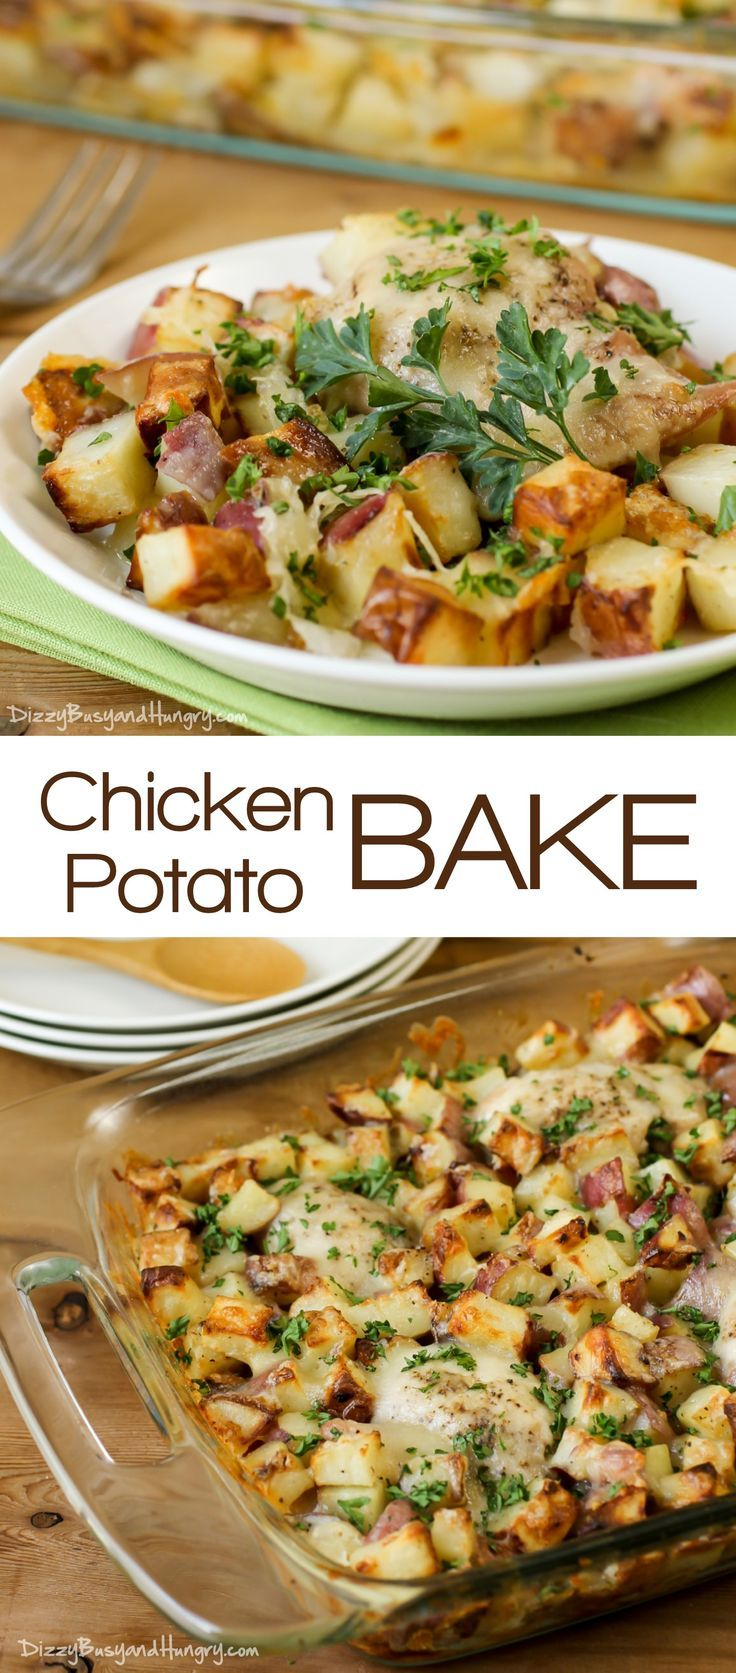 Chicken Potato Bake | DizzyBusyandHungry.com - Potatoes tossed in garlic and olive oil and baked to a golden brown with tender, juicy chicken thighs. A family favorite! Great Recipe!